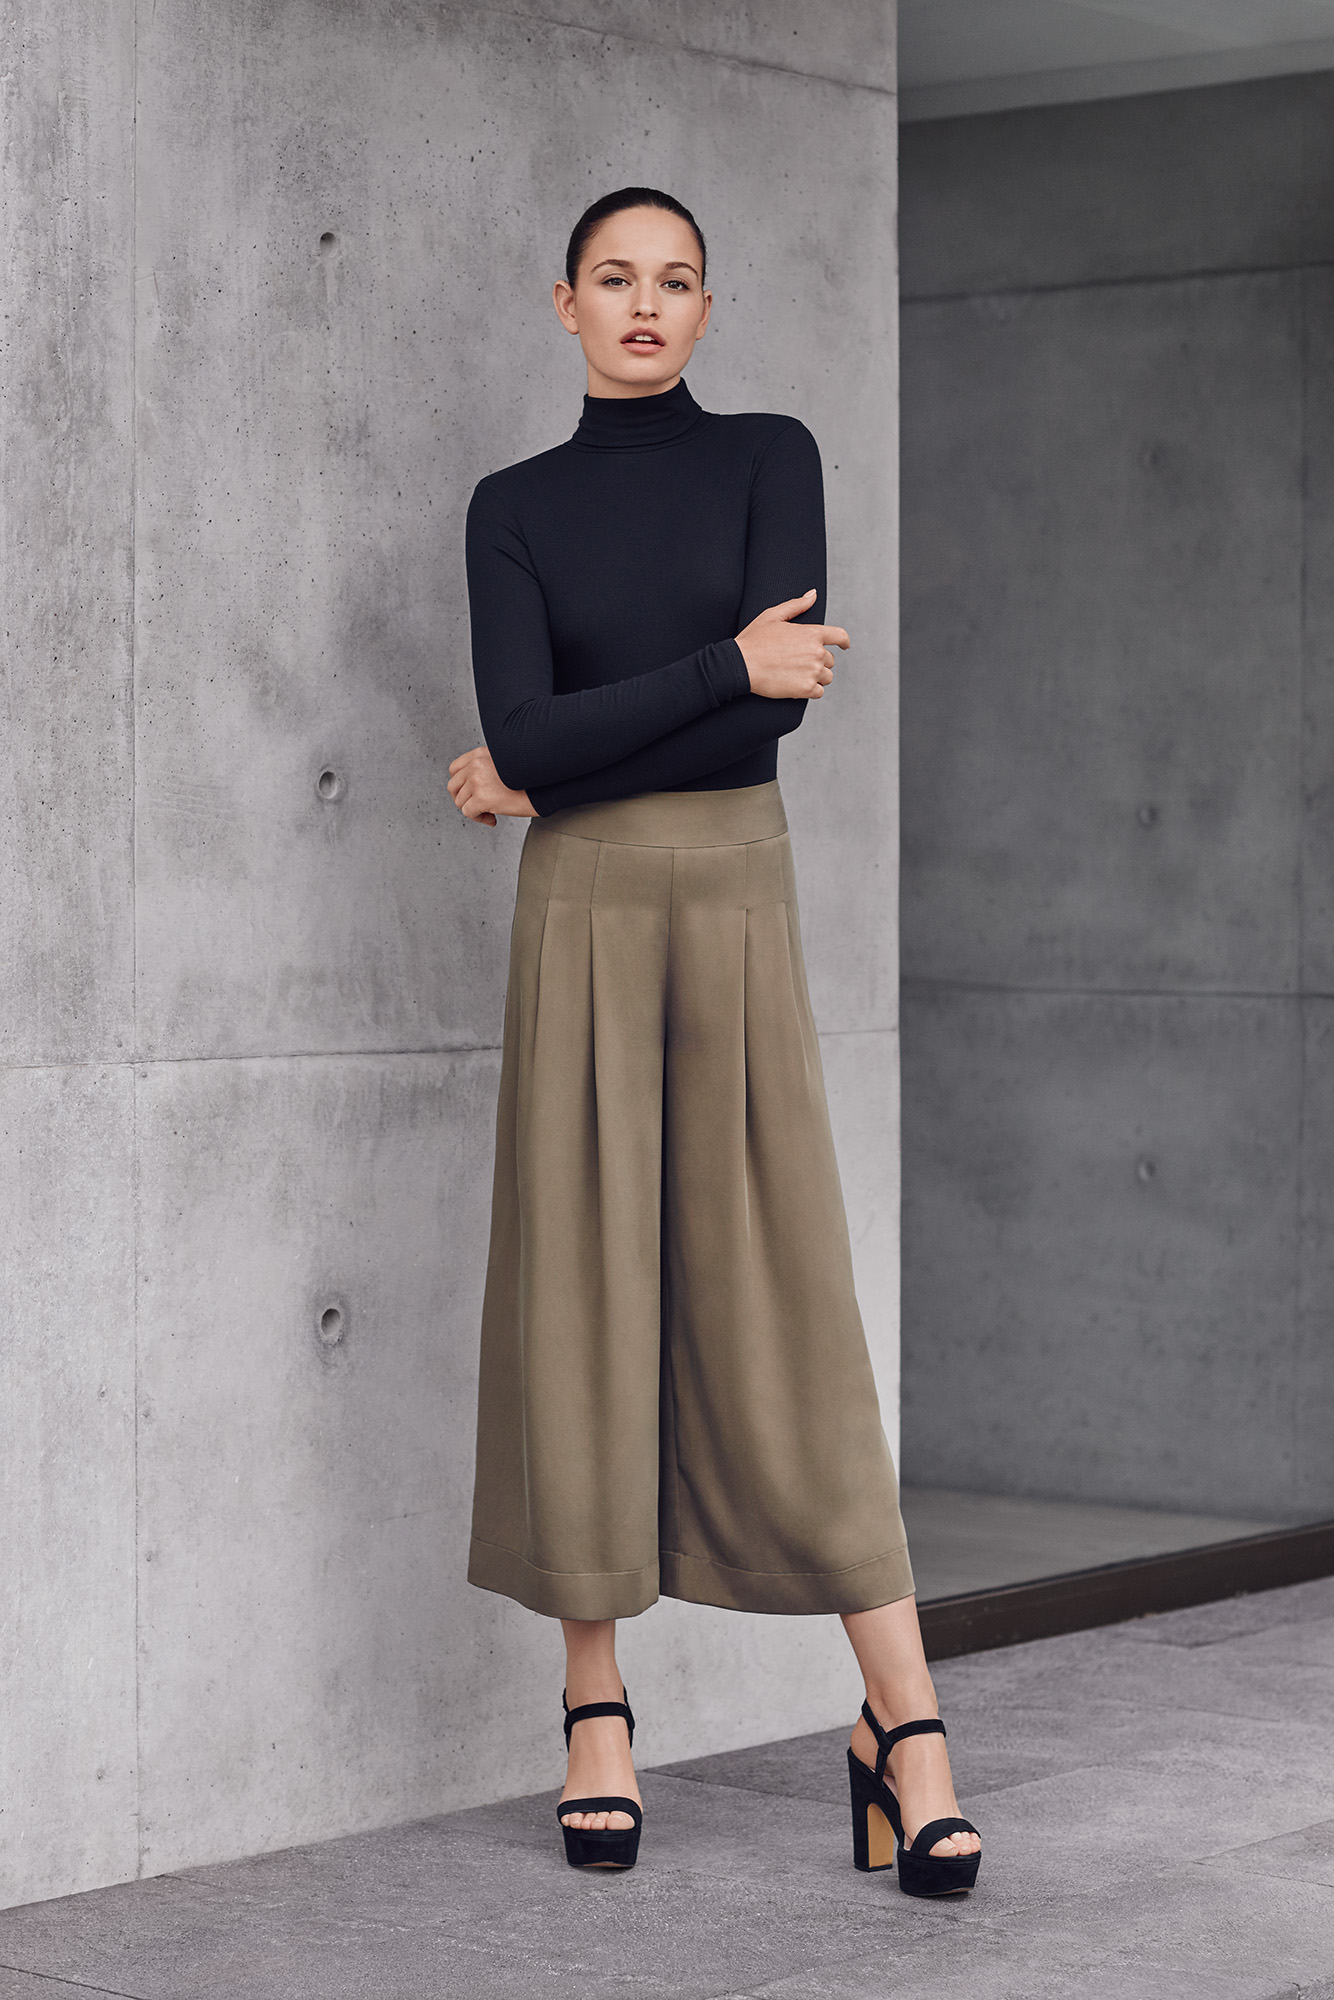 151210_Seed_AW16_23_MarchCollection_0562